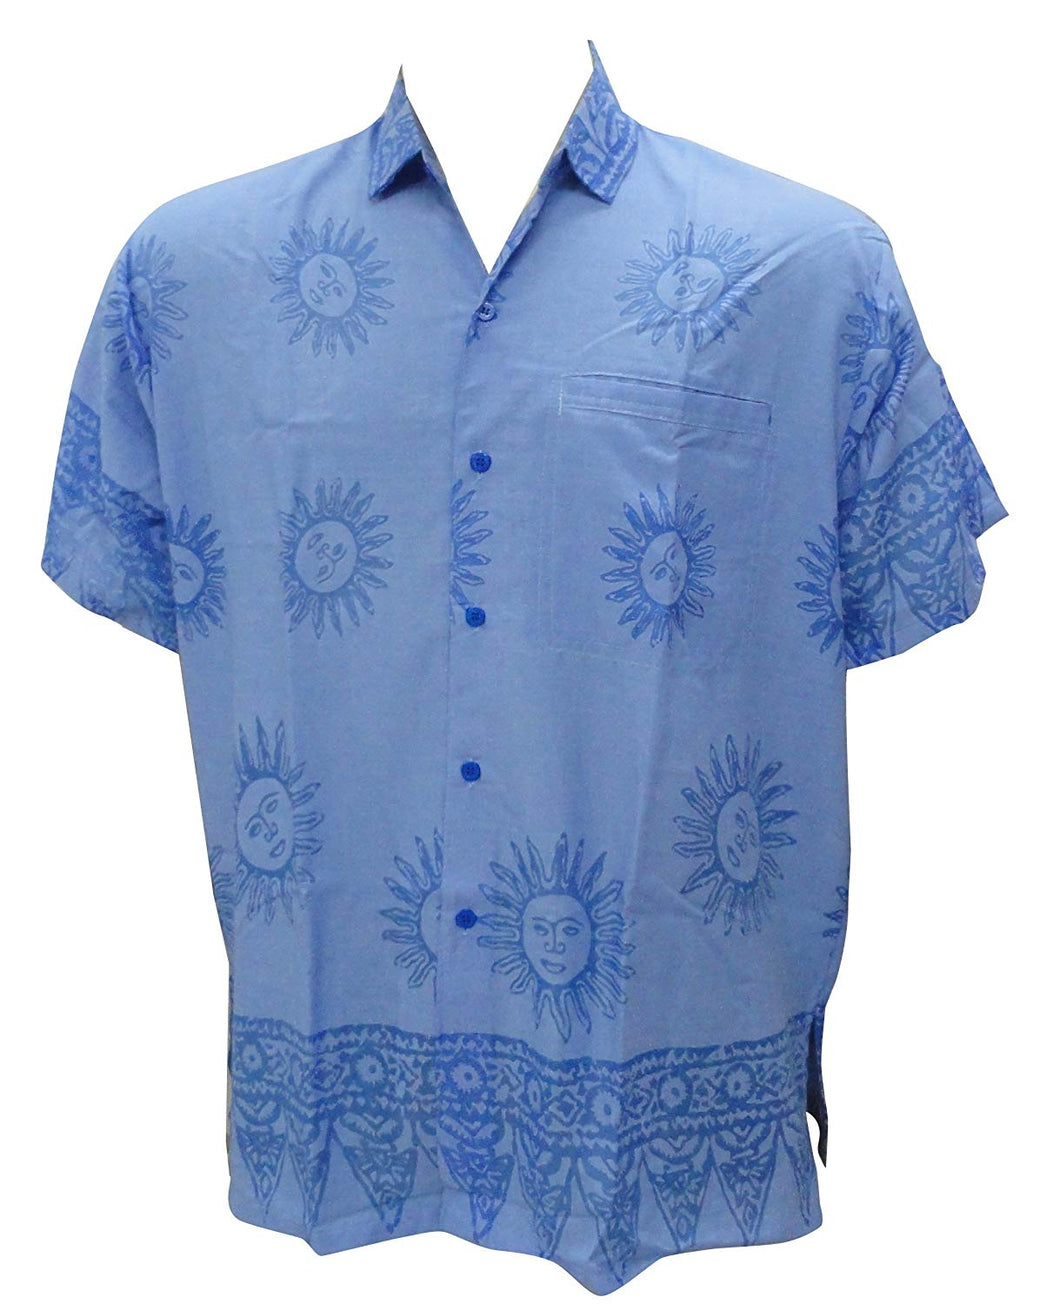 la-leela-shirt-casual-button-down-short-sleeve-beach-shirt-men-pocket-brasso-171